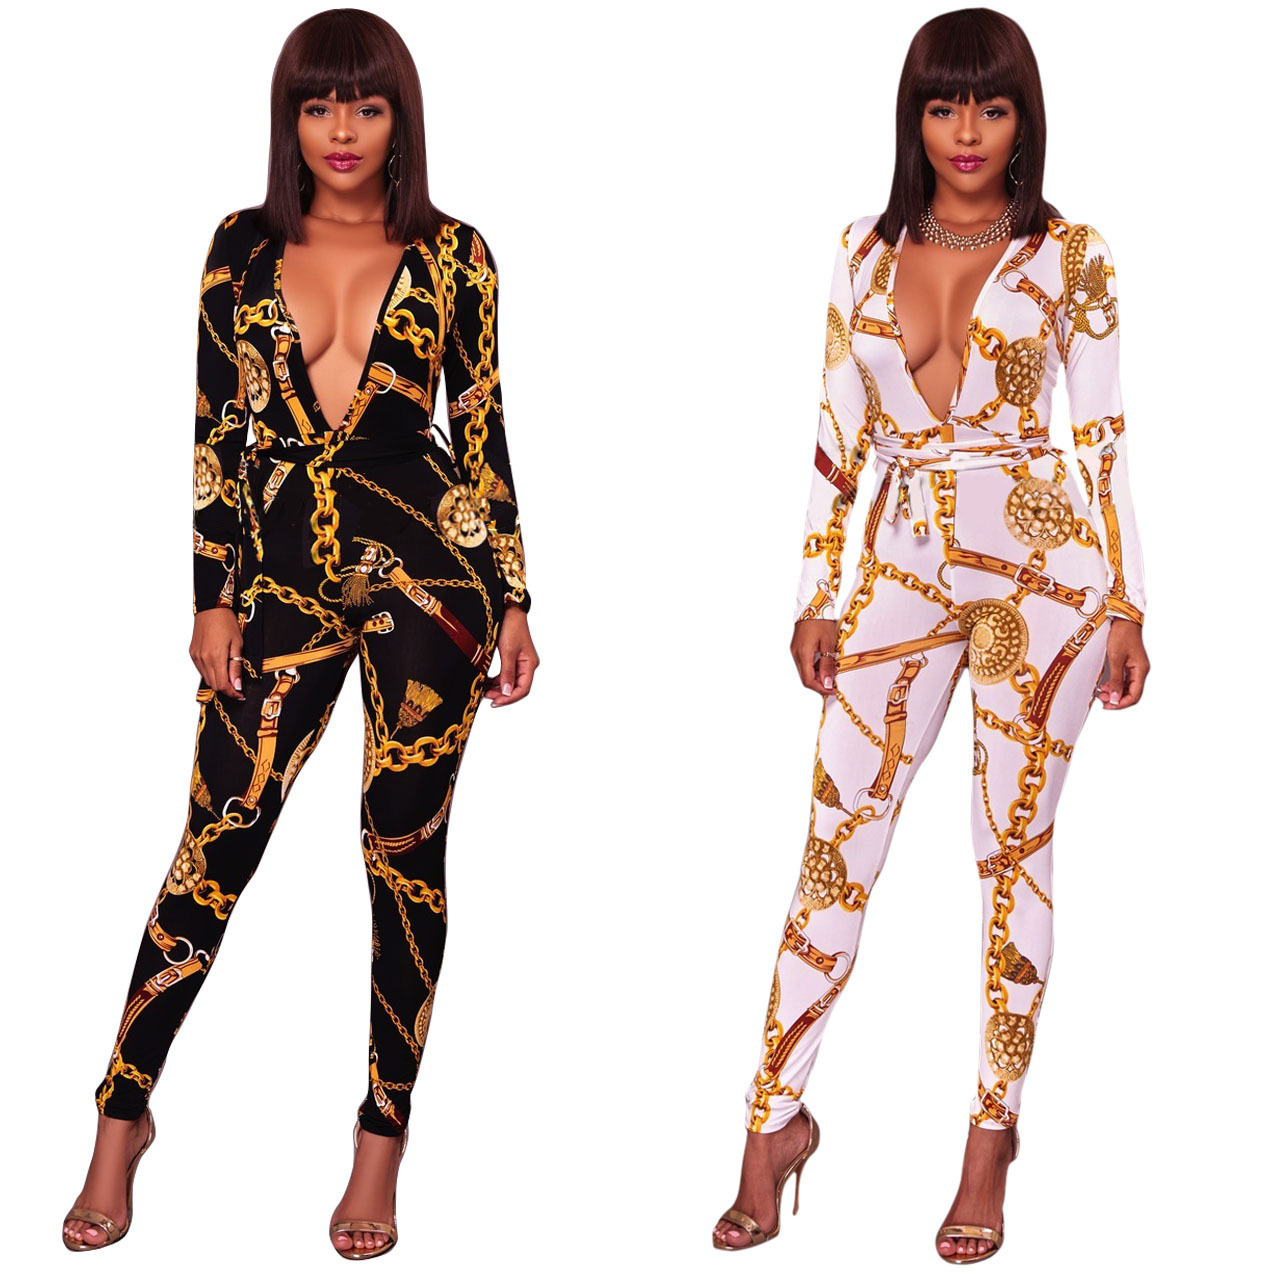 M672 Separate Station Europe And America Hot Selling Fashion Chain Printed Retro V-neck Long Sleeve Onesie